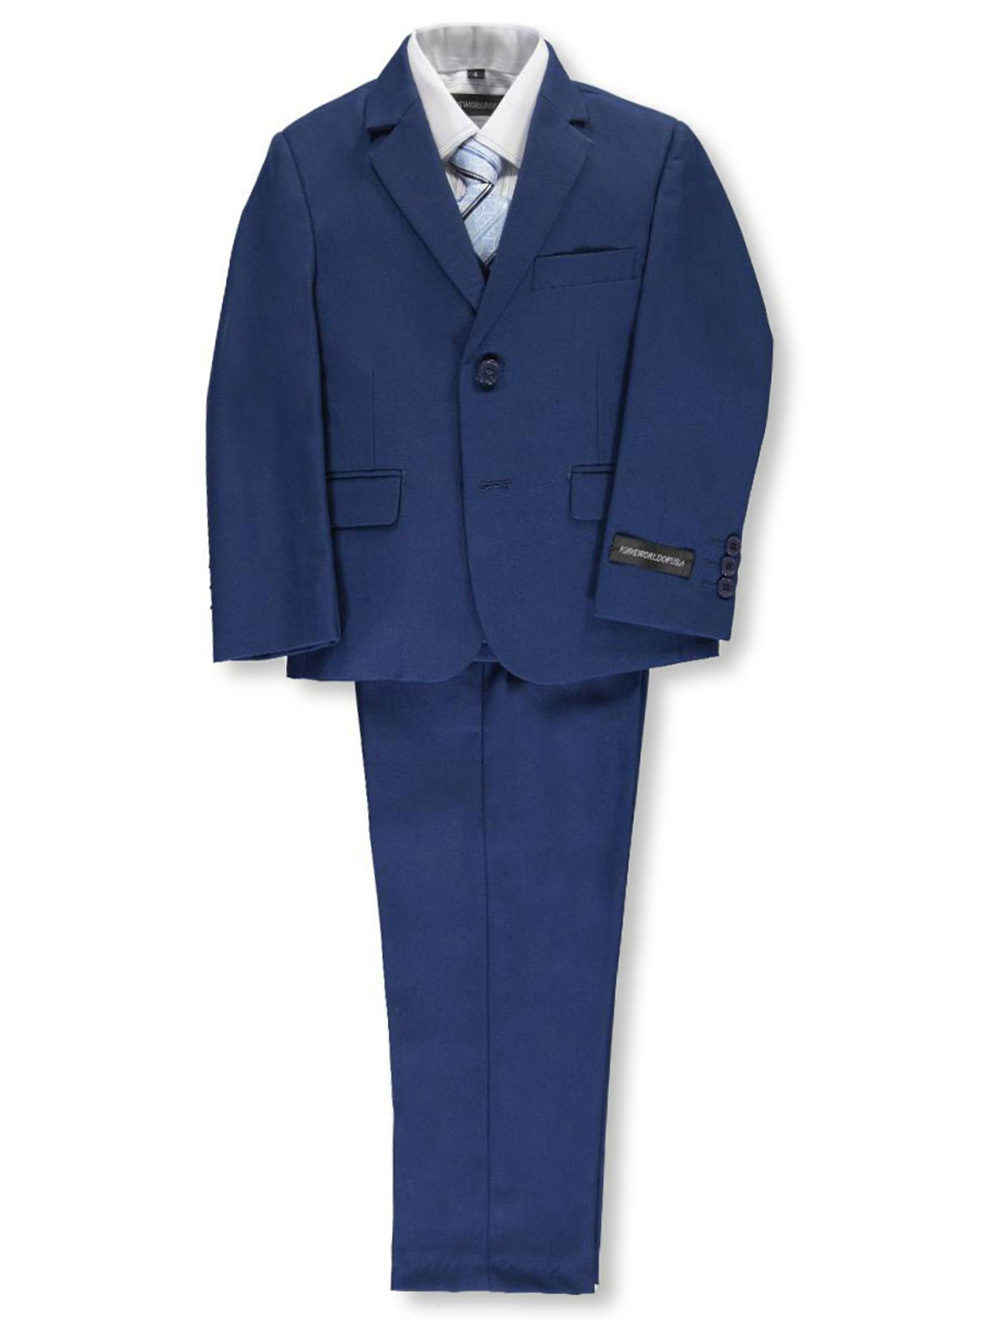 Medium Blue Suits